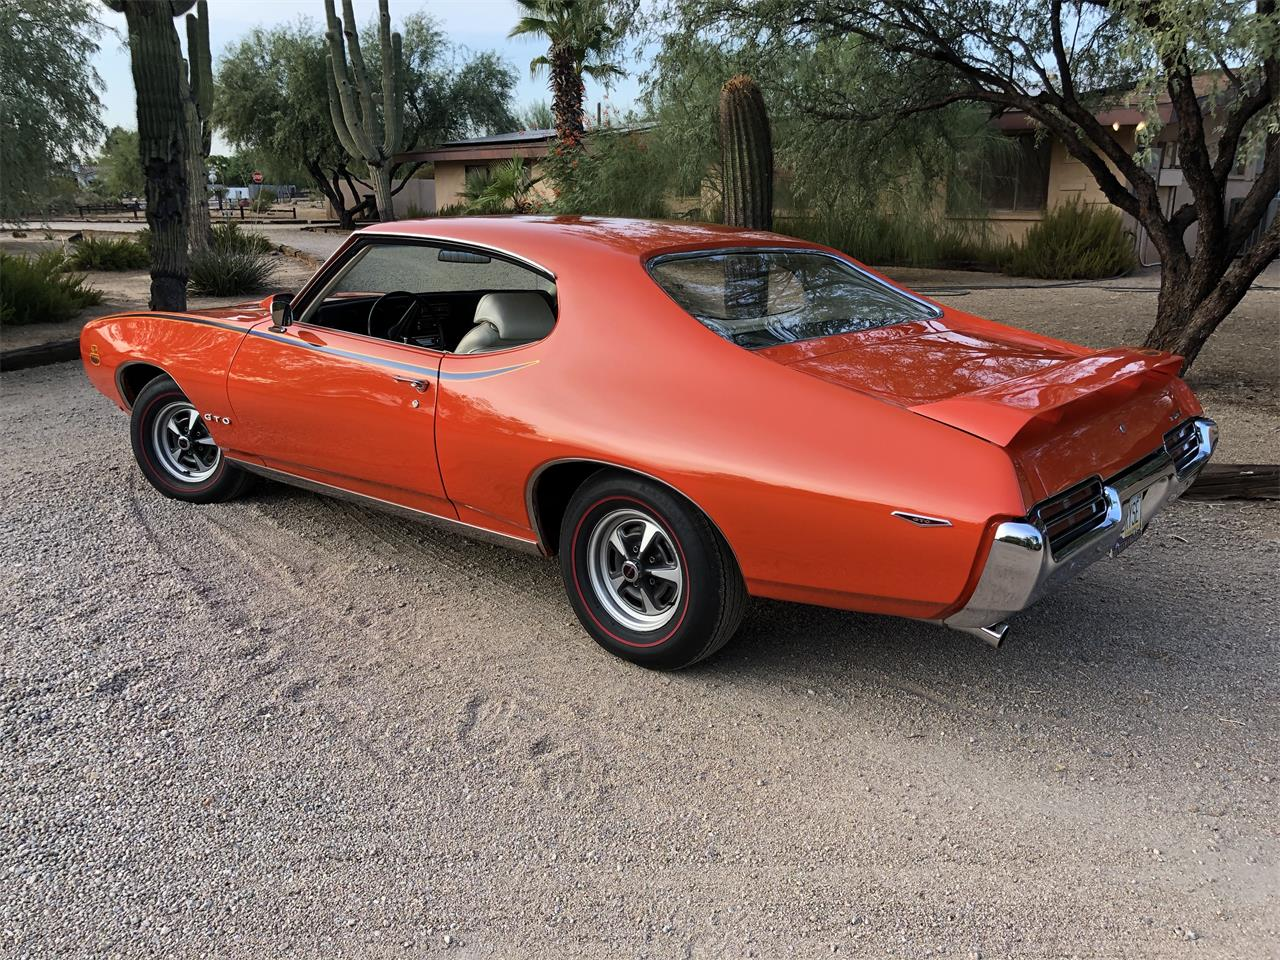 1969 Pontiac GTO (The Judge) (CC-1387657) for sale in Scootsdale, Arizona